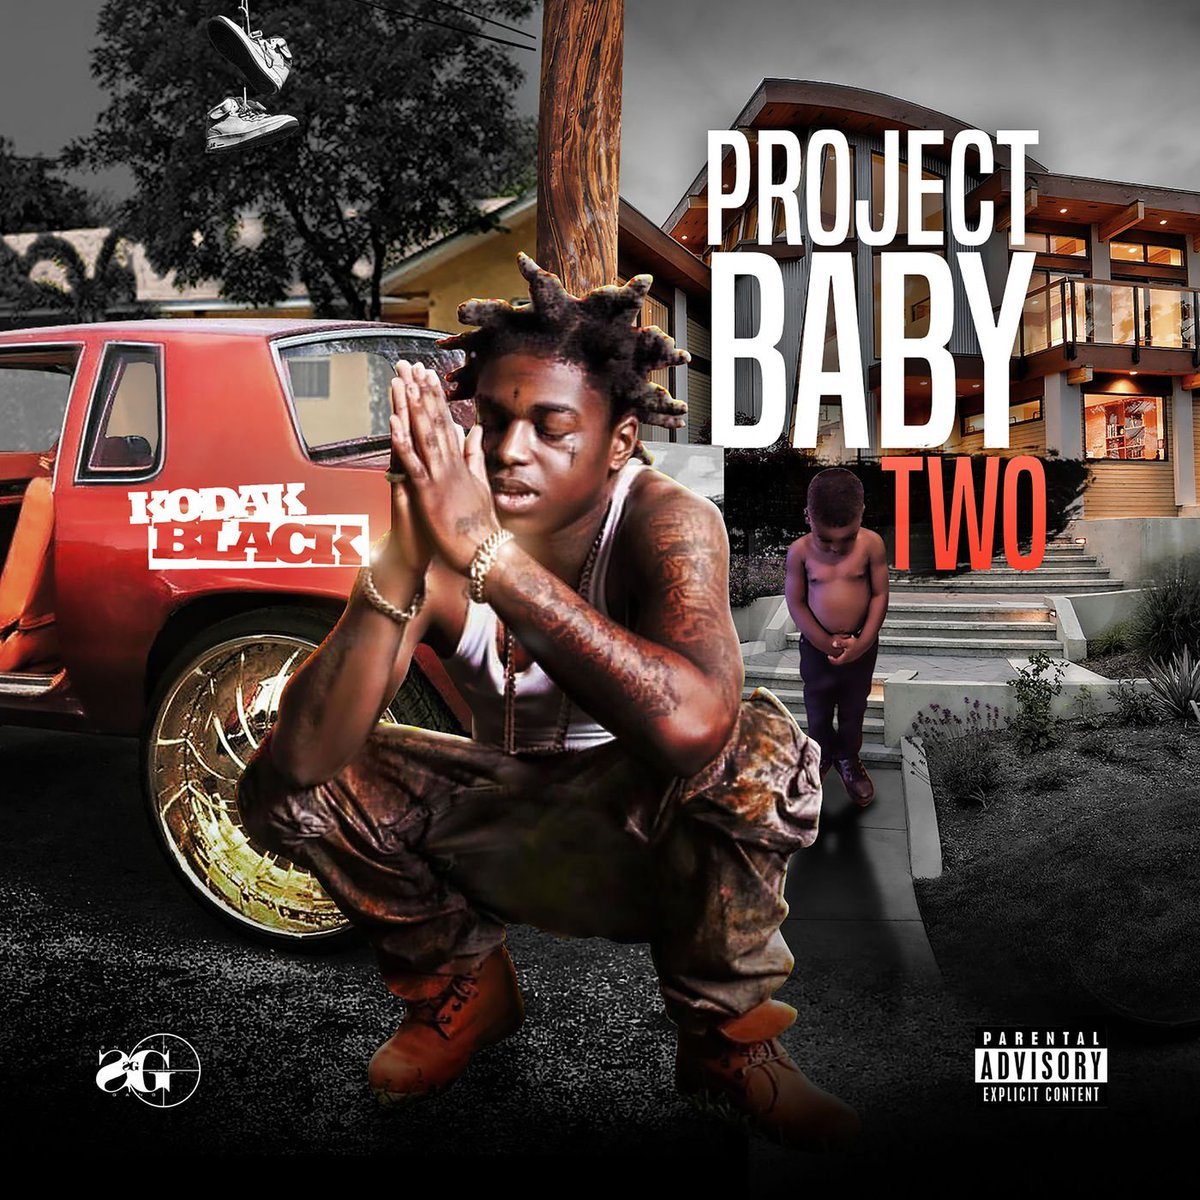 🚨 @KodakBlack1k's #ProjectBaby2 album is out now! 🚨  https://t.co/UXln...